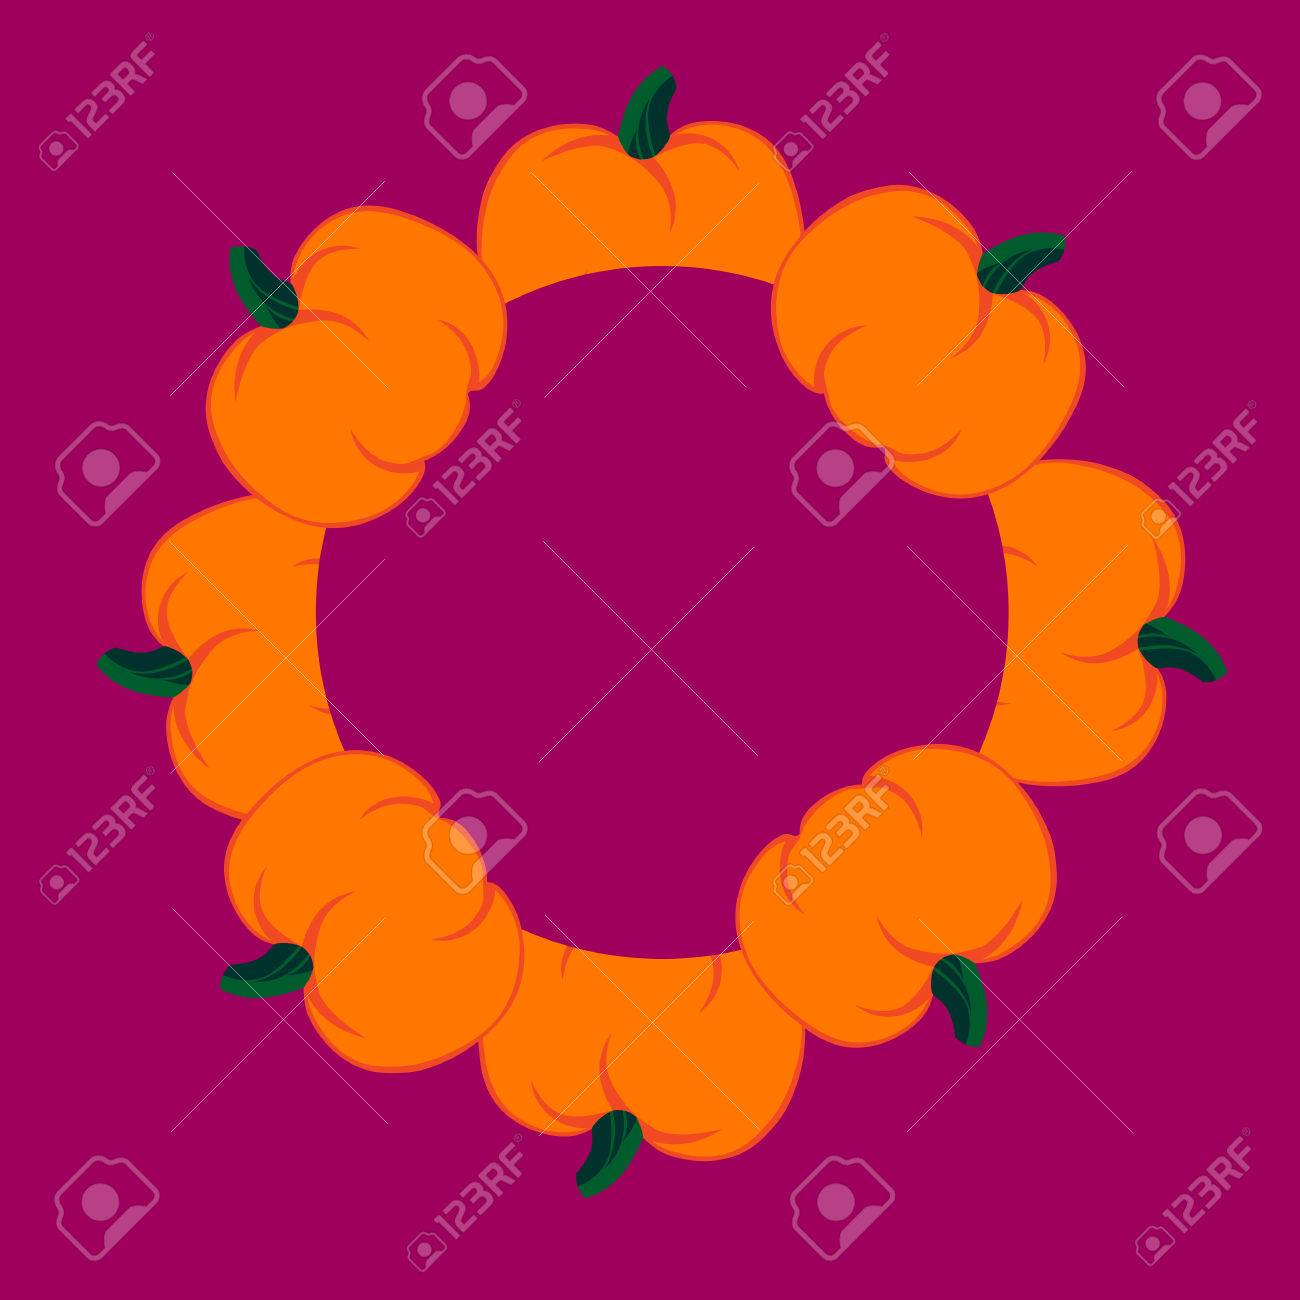 Beautiful Art Creative Colorful Halloween Holiday Wallpaper Vector Il Ration Of Many Orange Pumpkins In Round On